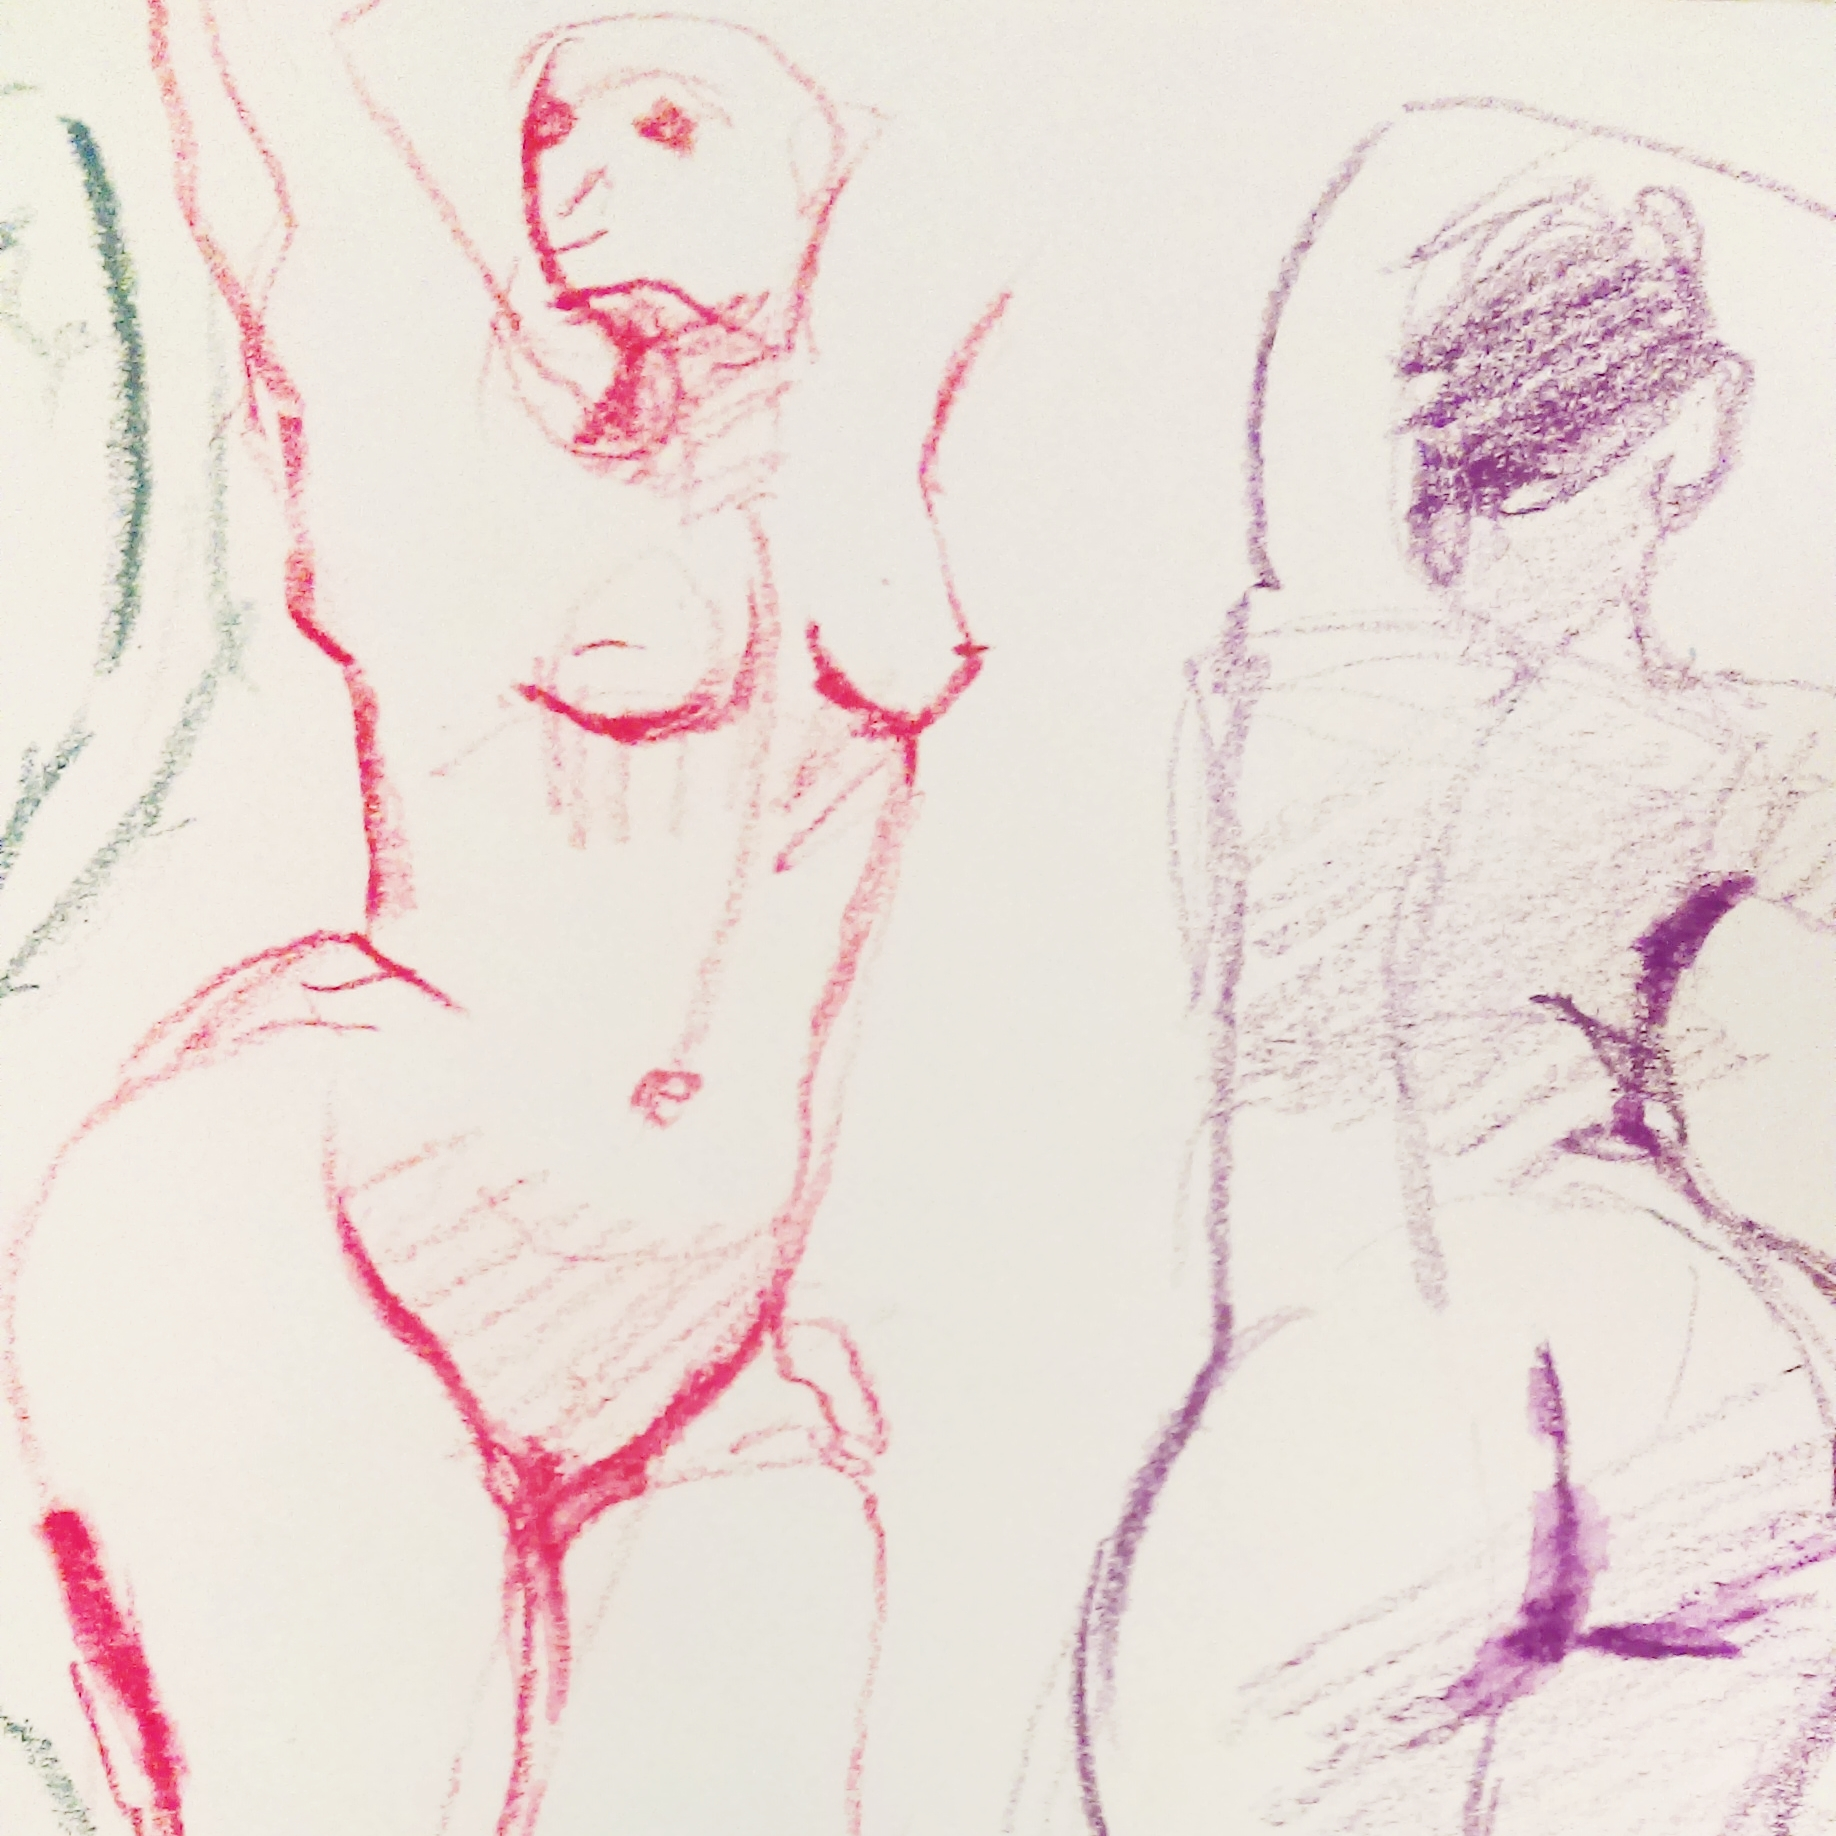 Drawing Gym - Ramp up your accurate drawing skills in one day. This boot camp course will help you draw accurately in whatever medium you love.